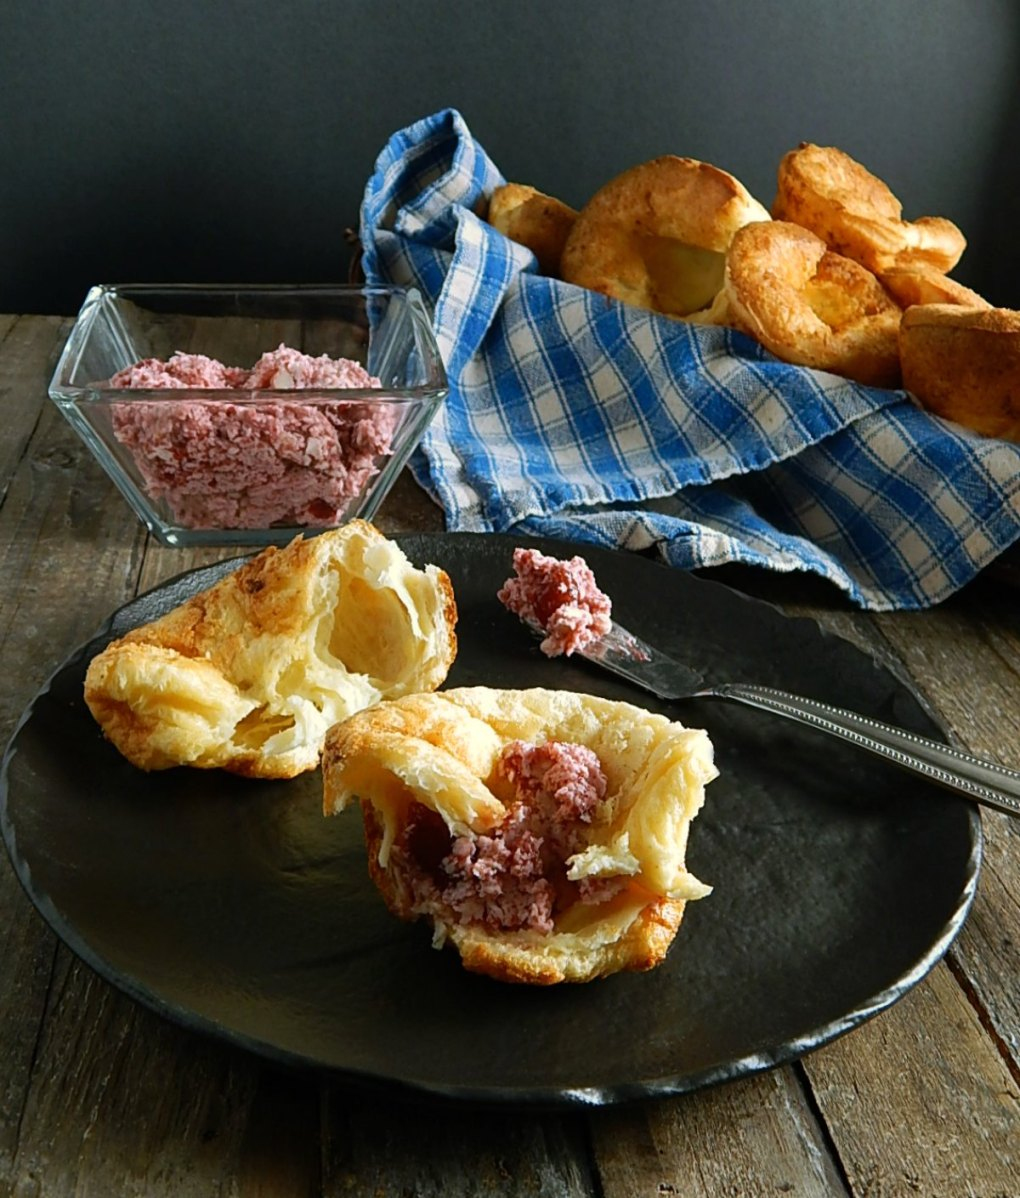 Strawberry Butter & Popovers in a Muffin Tin